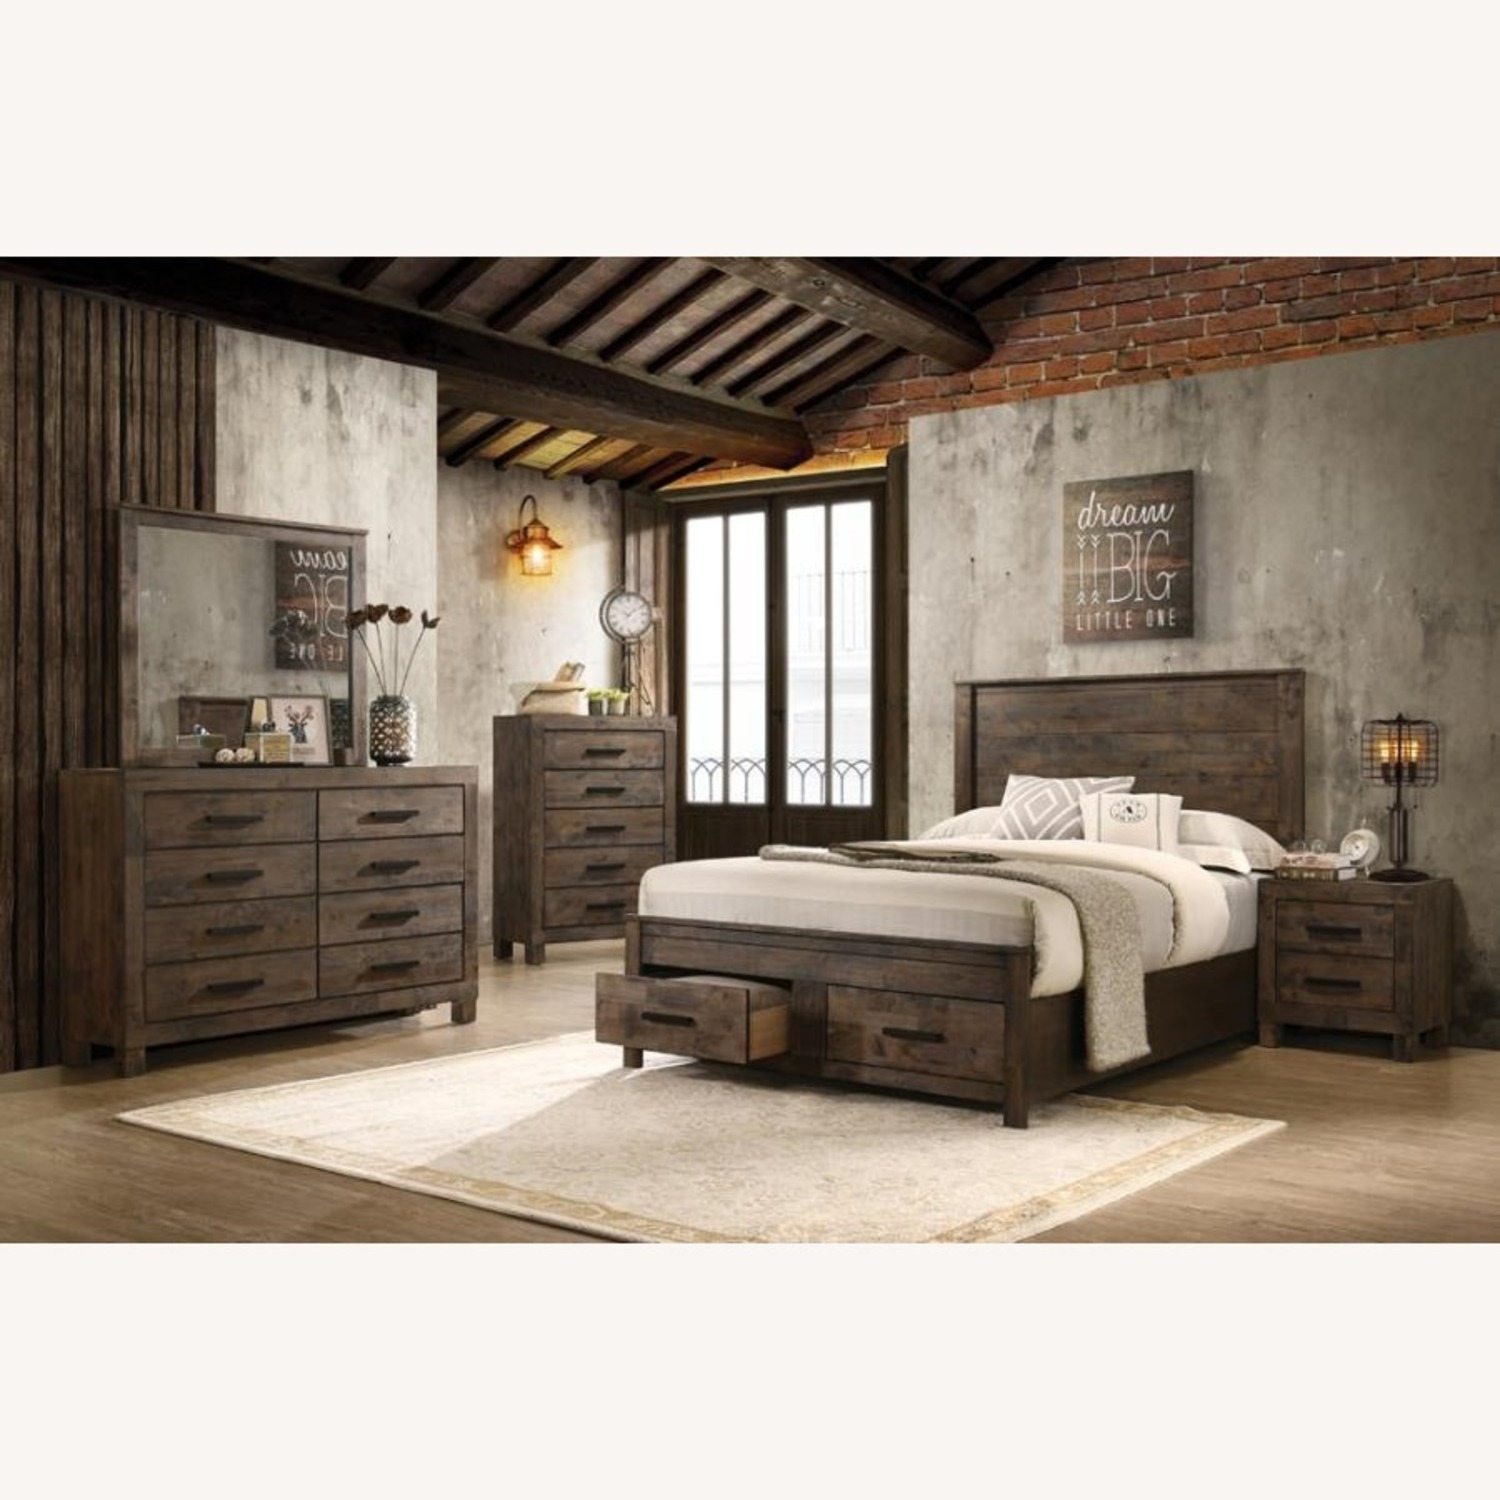 King Bed In Rustic Golden Brown Full Matte Finish - image-1